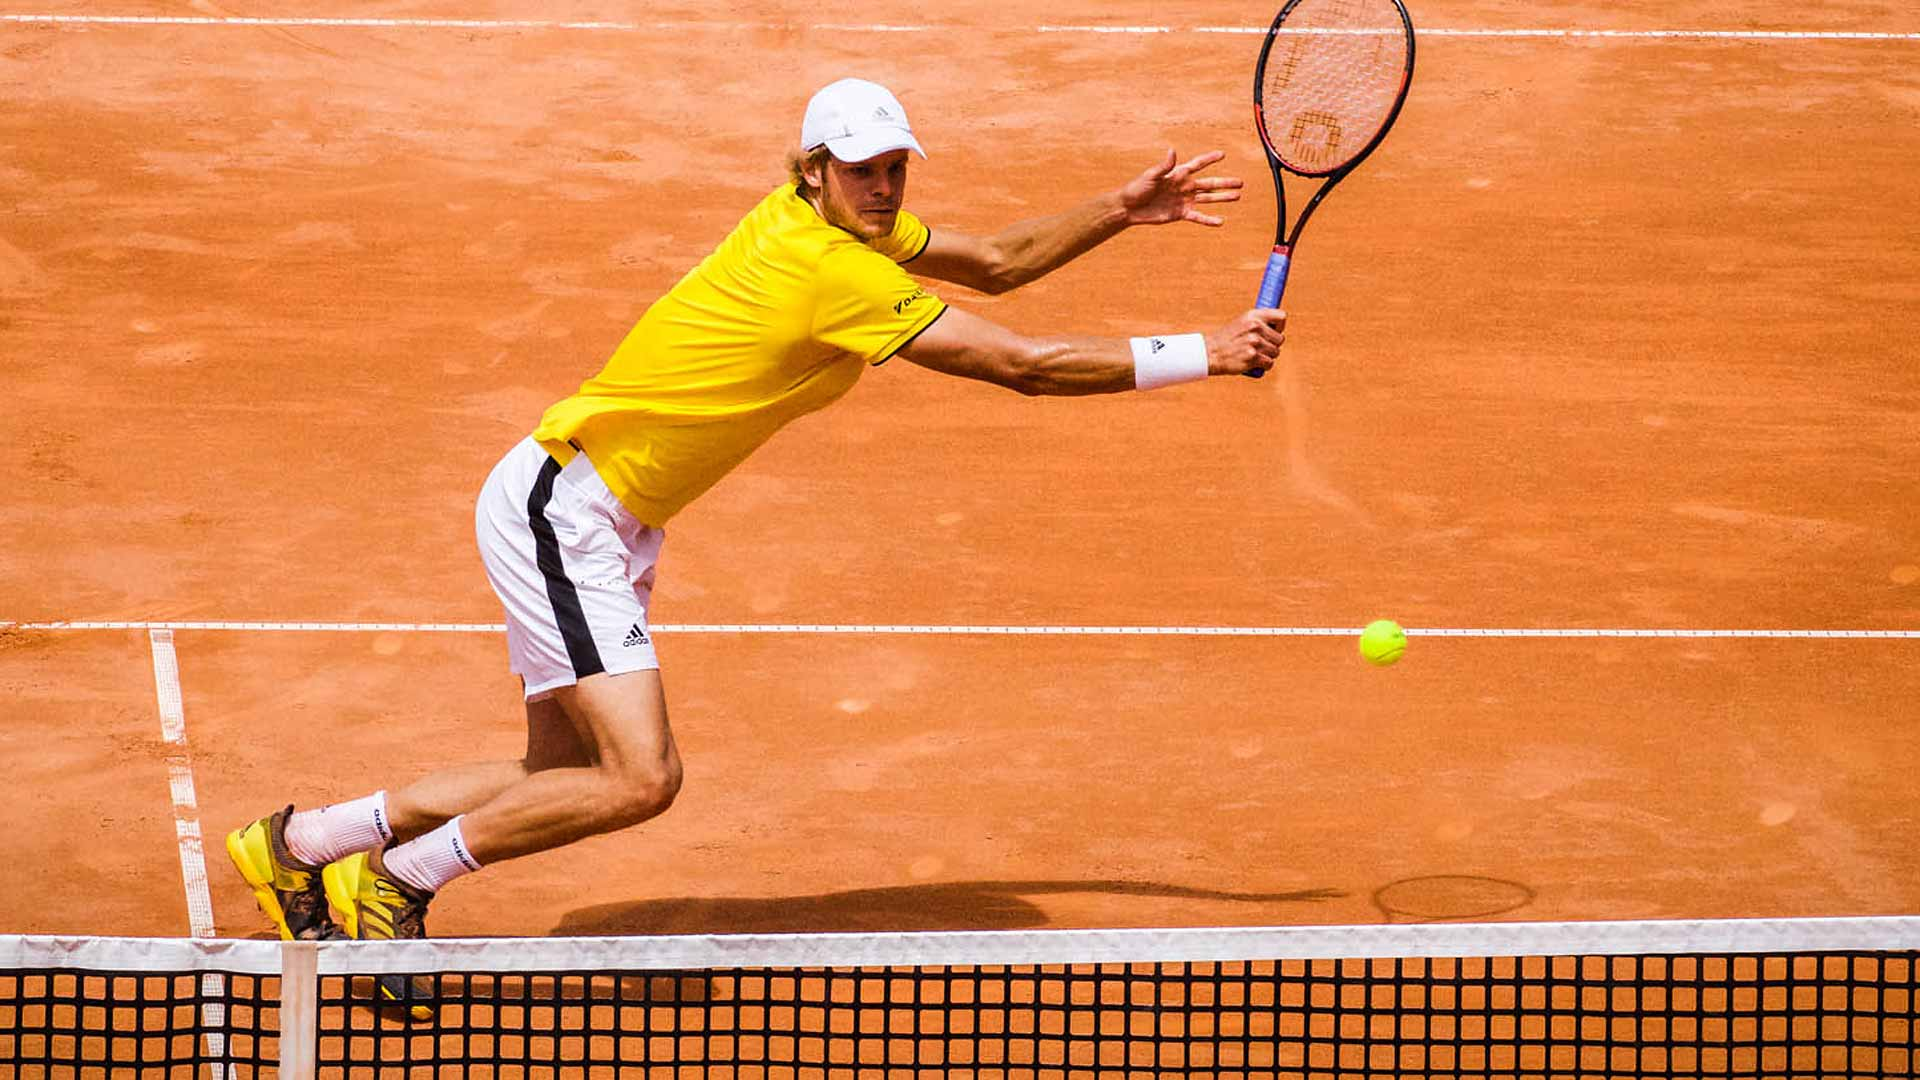 This image is of a man playing tennis, and this is the goal for students within this course.